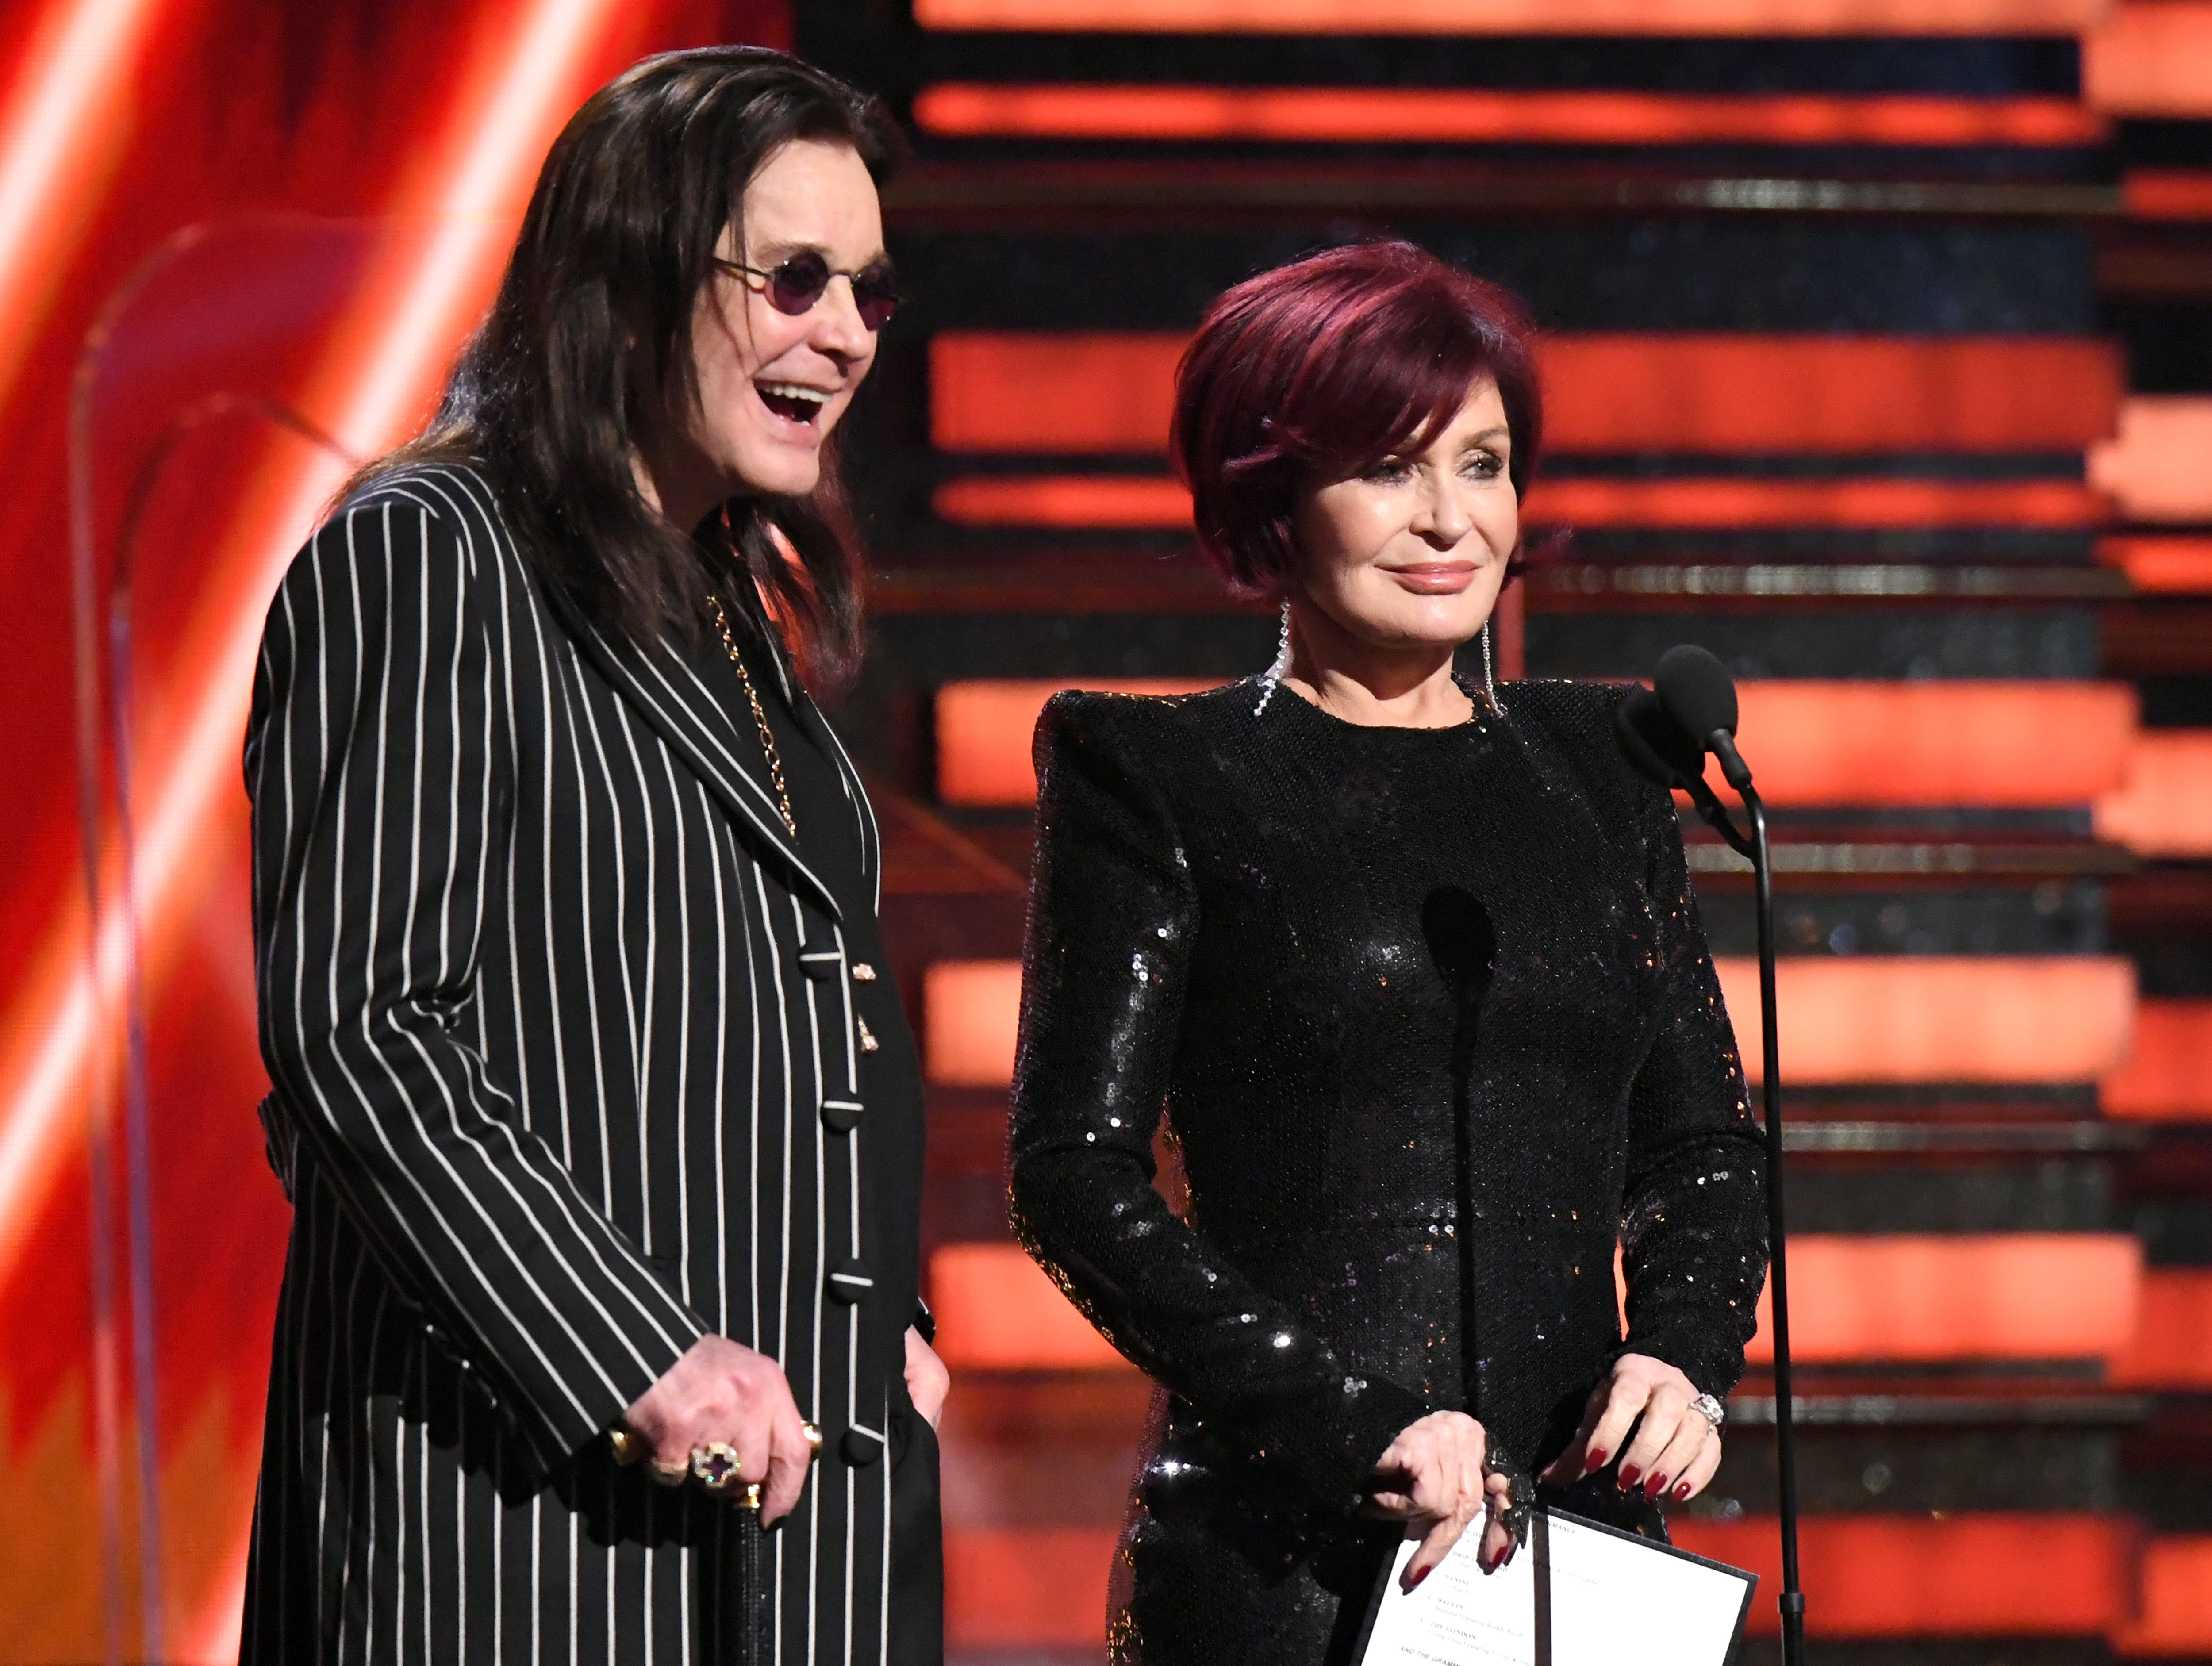 Ozzy Osbourne and Sharon Osbourne speak onstage during the 62nd Annual Grammy Awards at Staples Center on January 26, 2020 in Los Angeles, California   Photo: Getty Images